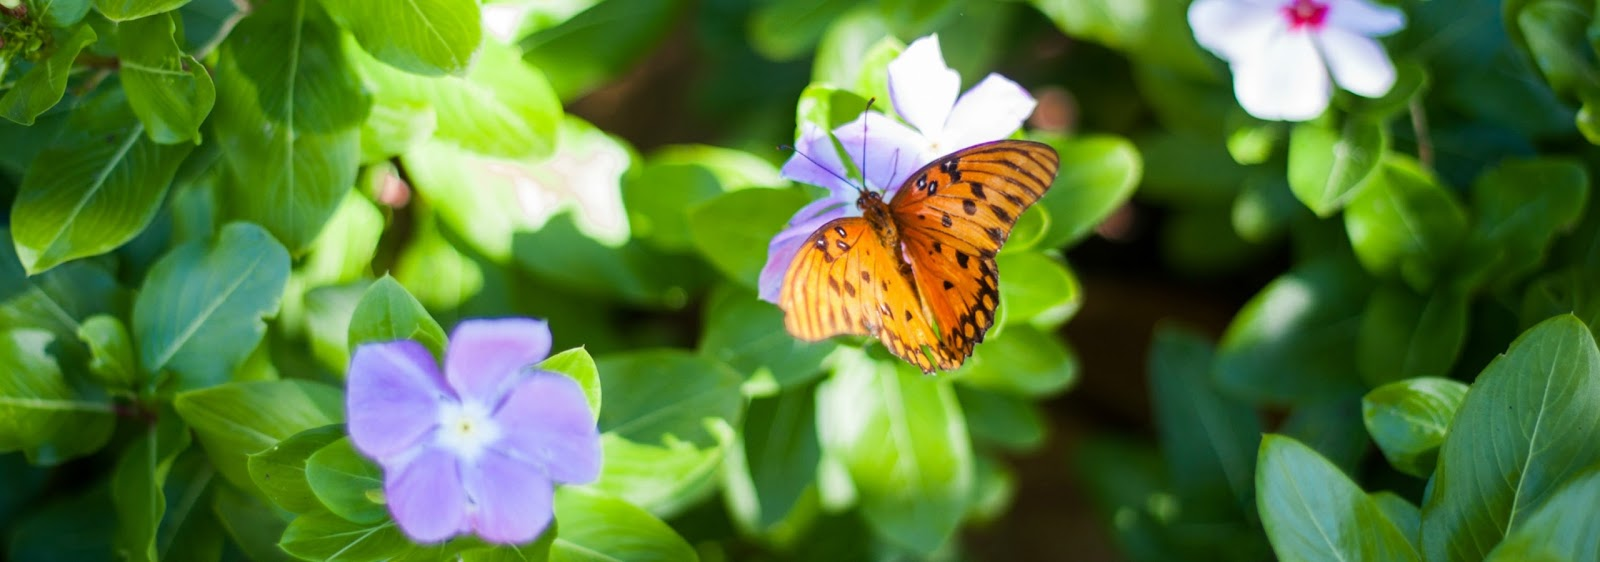 orange butterfly on a purple flower surrounded by green leaves